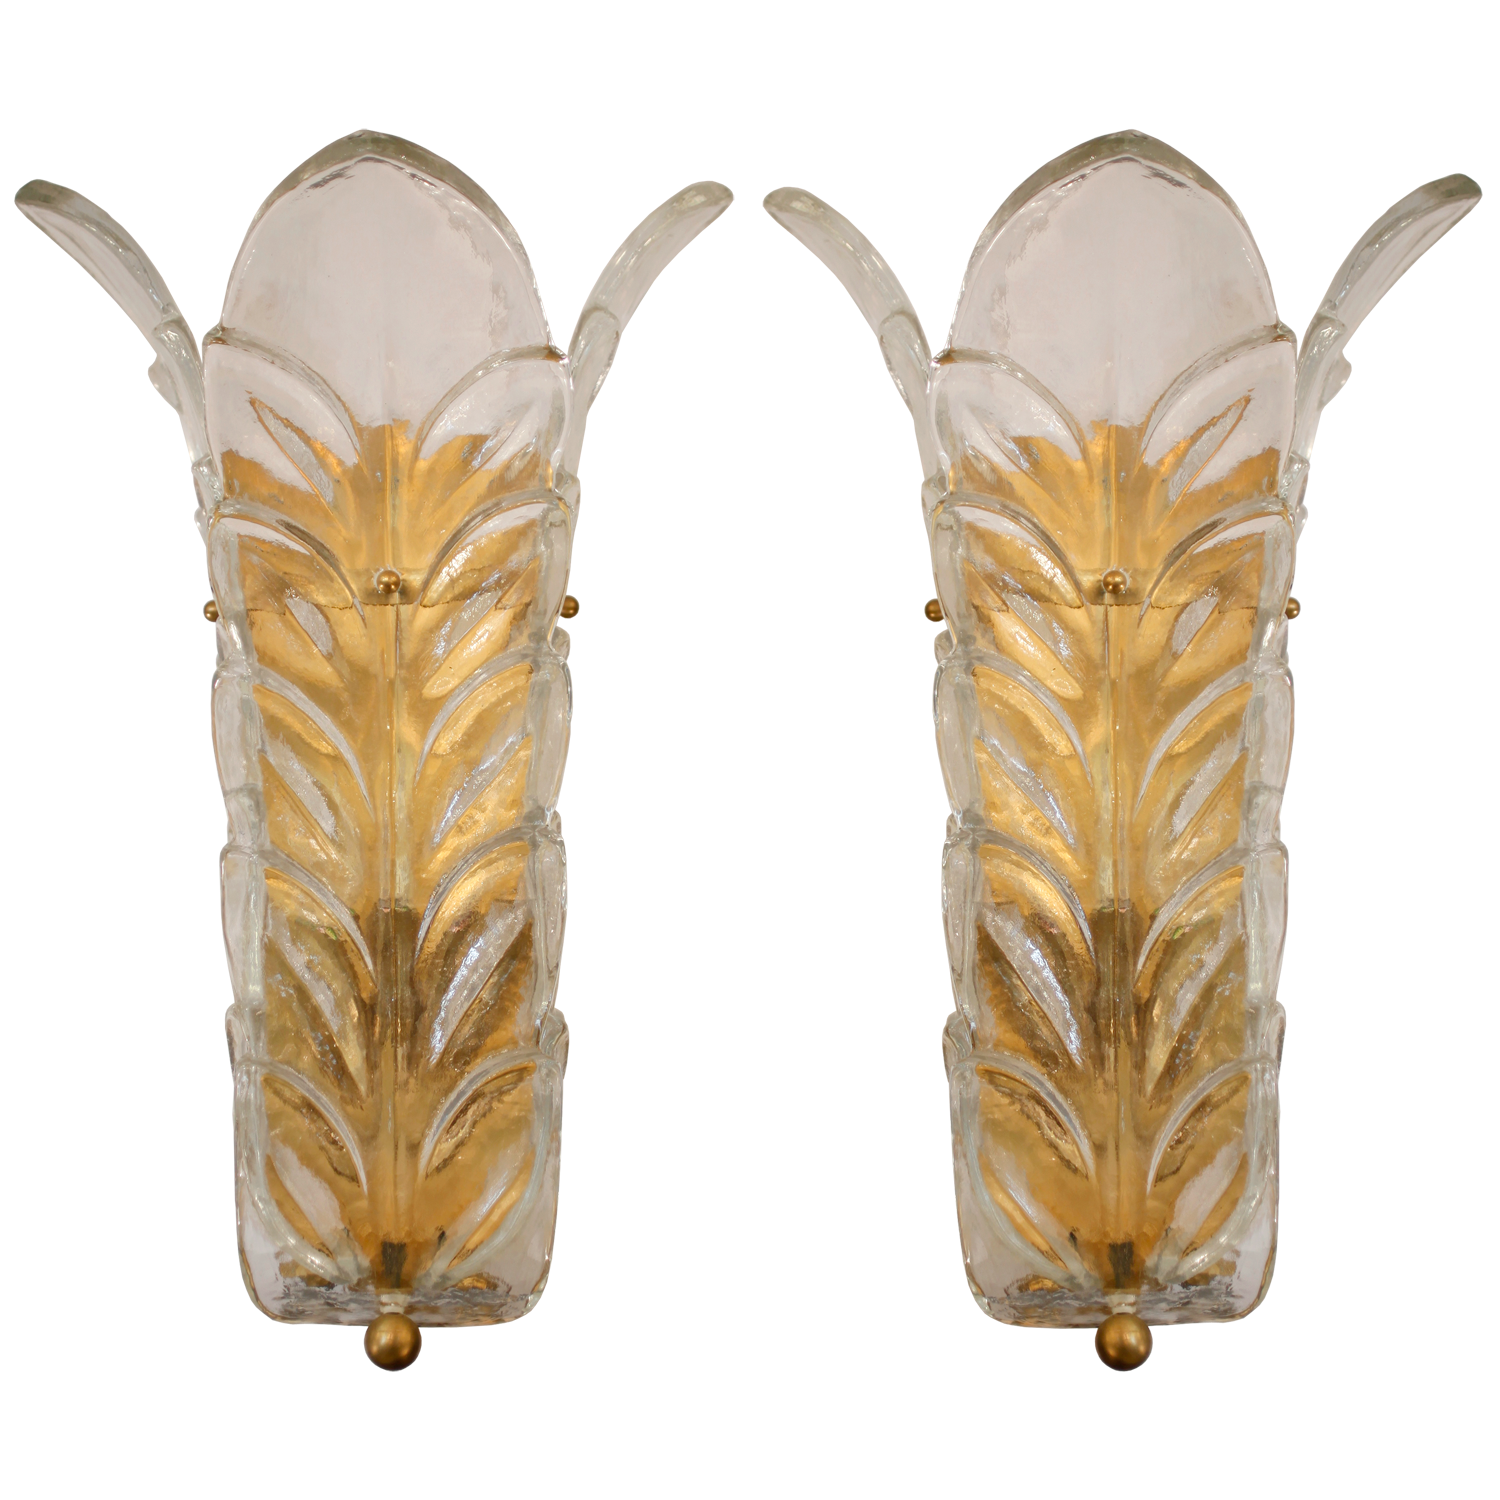 Murano glass sconces by toso and barovier 38 wall lamp murano glass sconces by toso and barovier mozeypictures Gallery